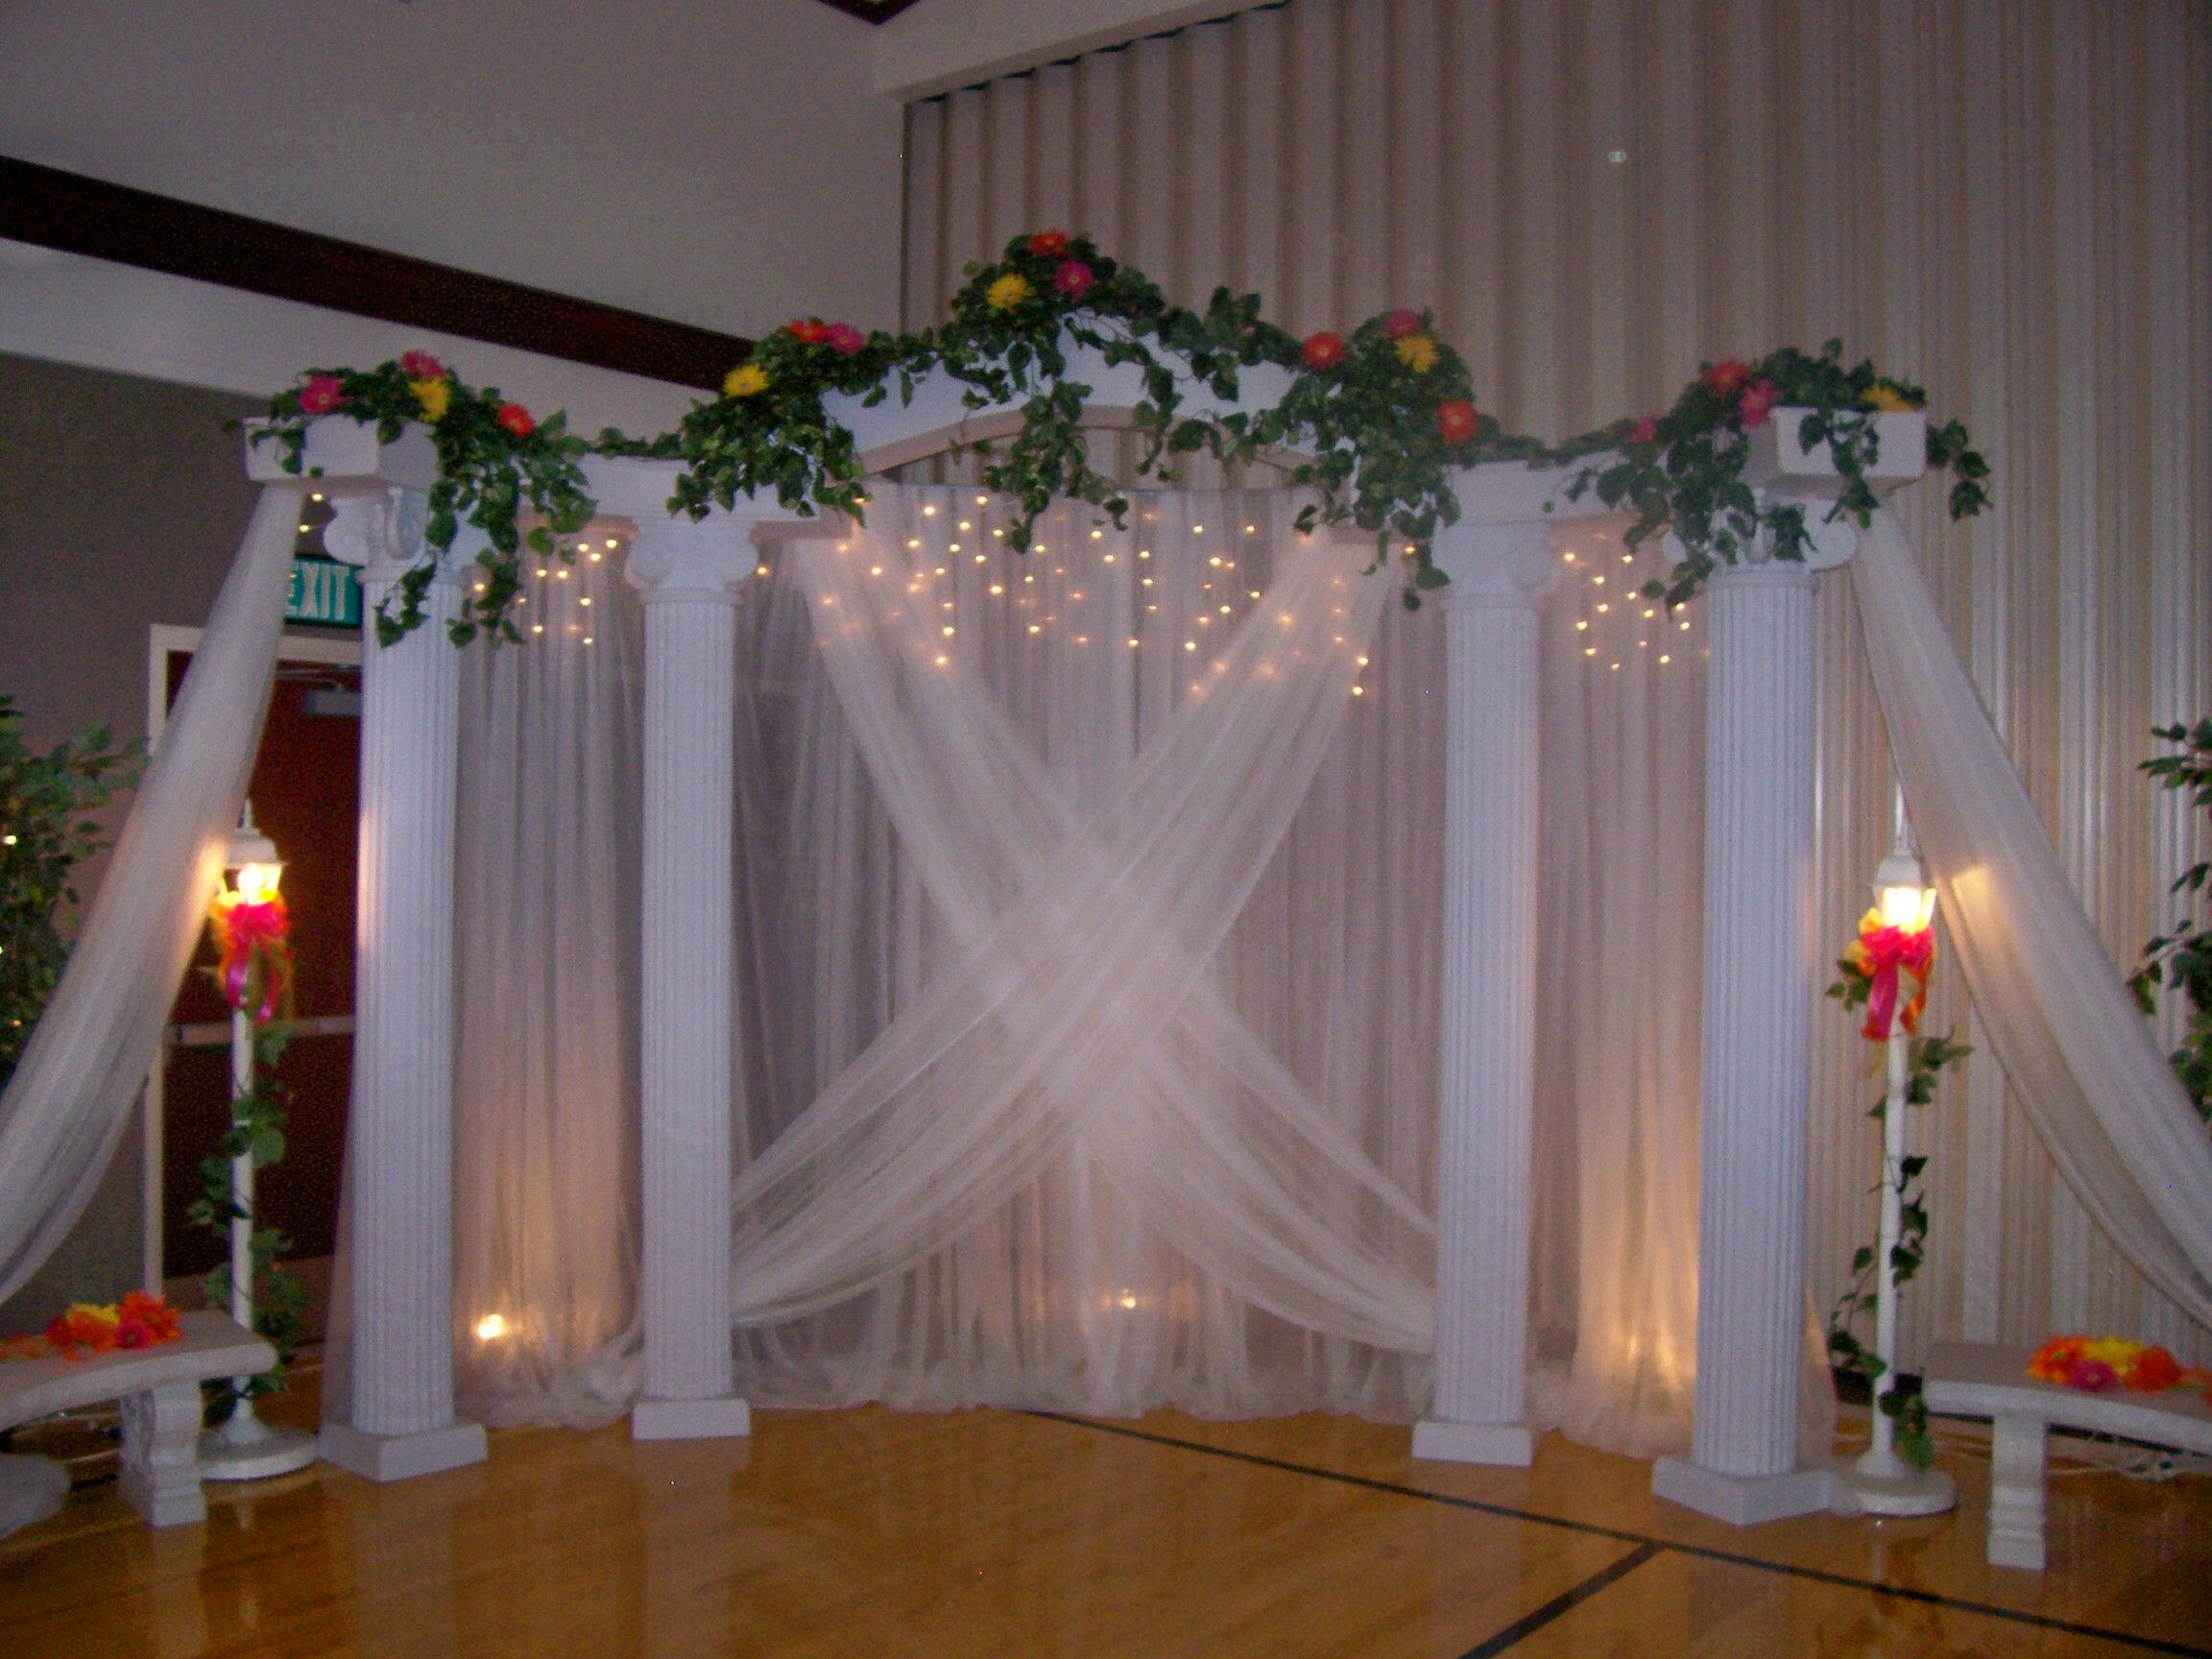 Diy Wedding Backdrop With Lights Pic Of Wedding Columns Backdrops Cake Classic